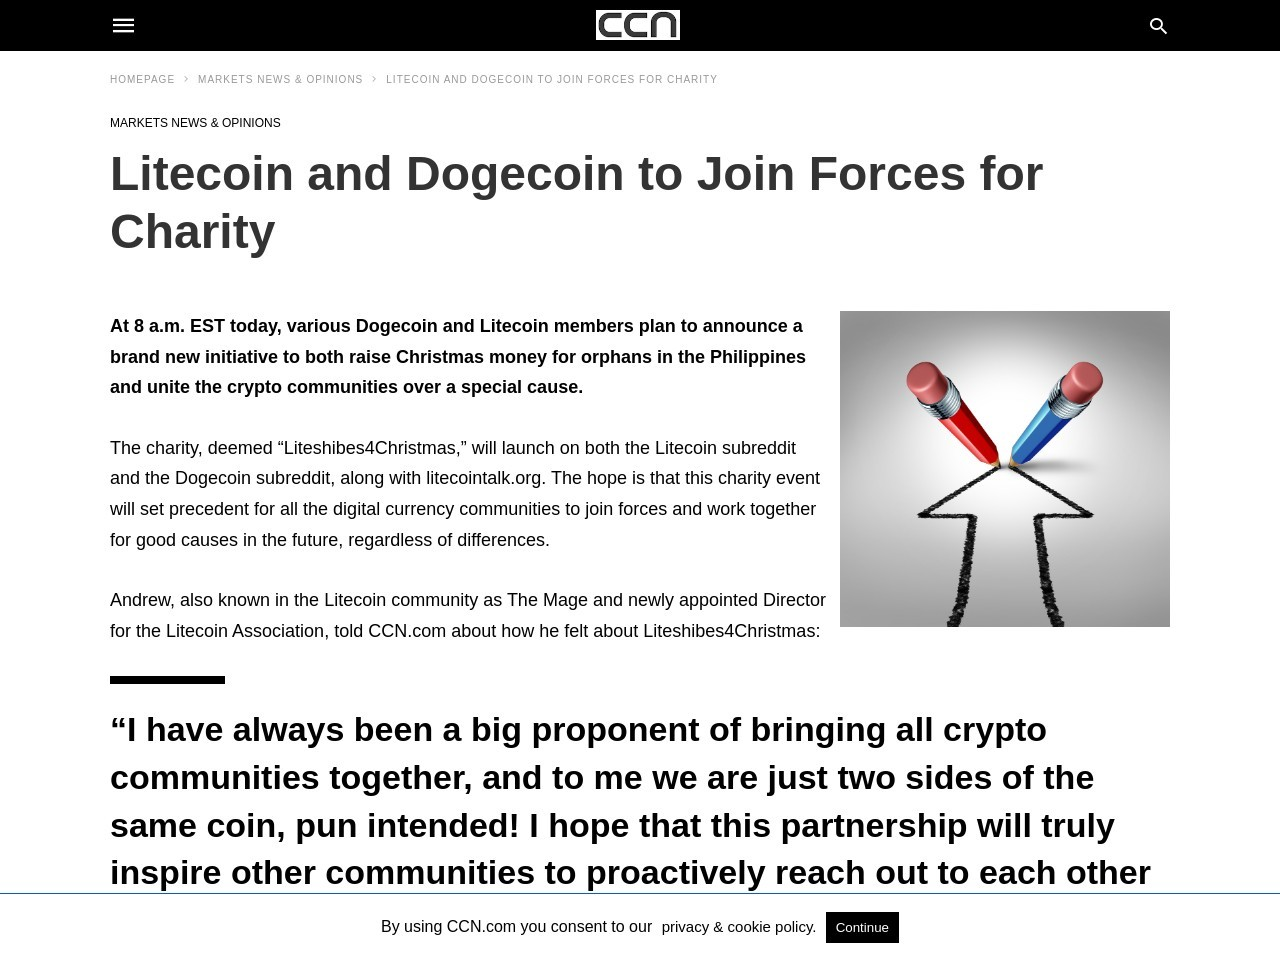 Litecoin and Dogecoin to Join Forces for Charity